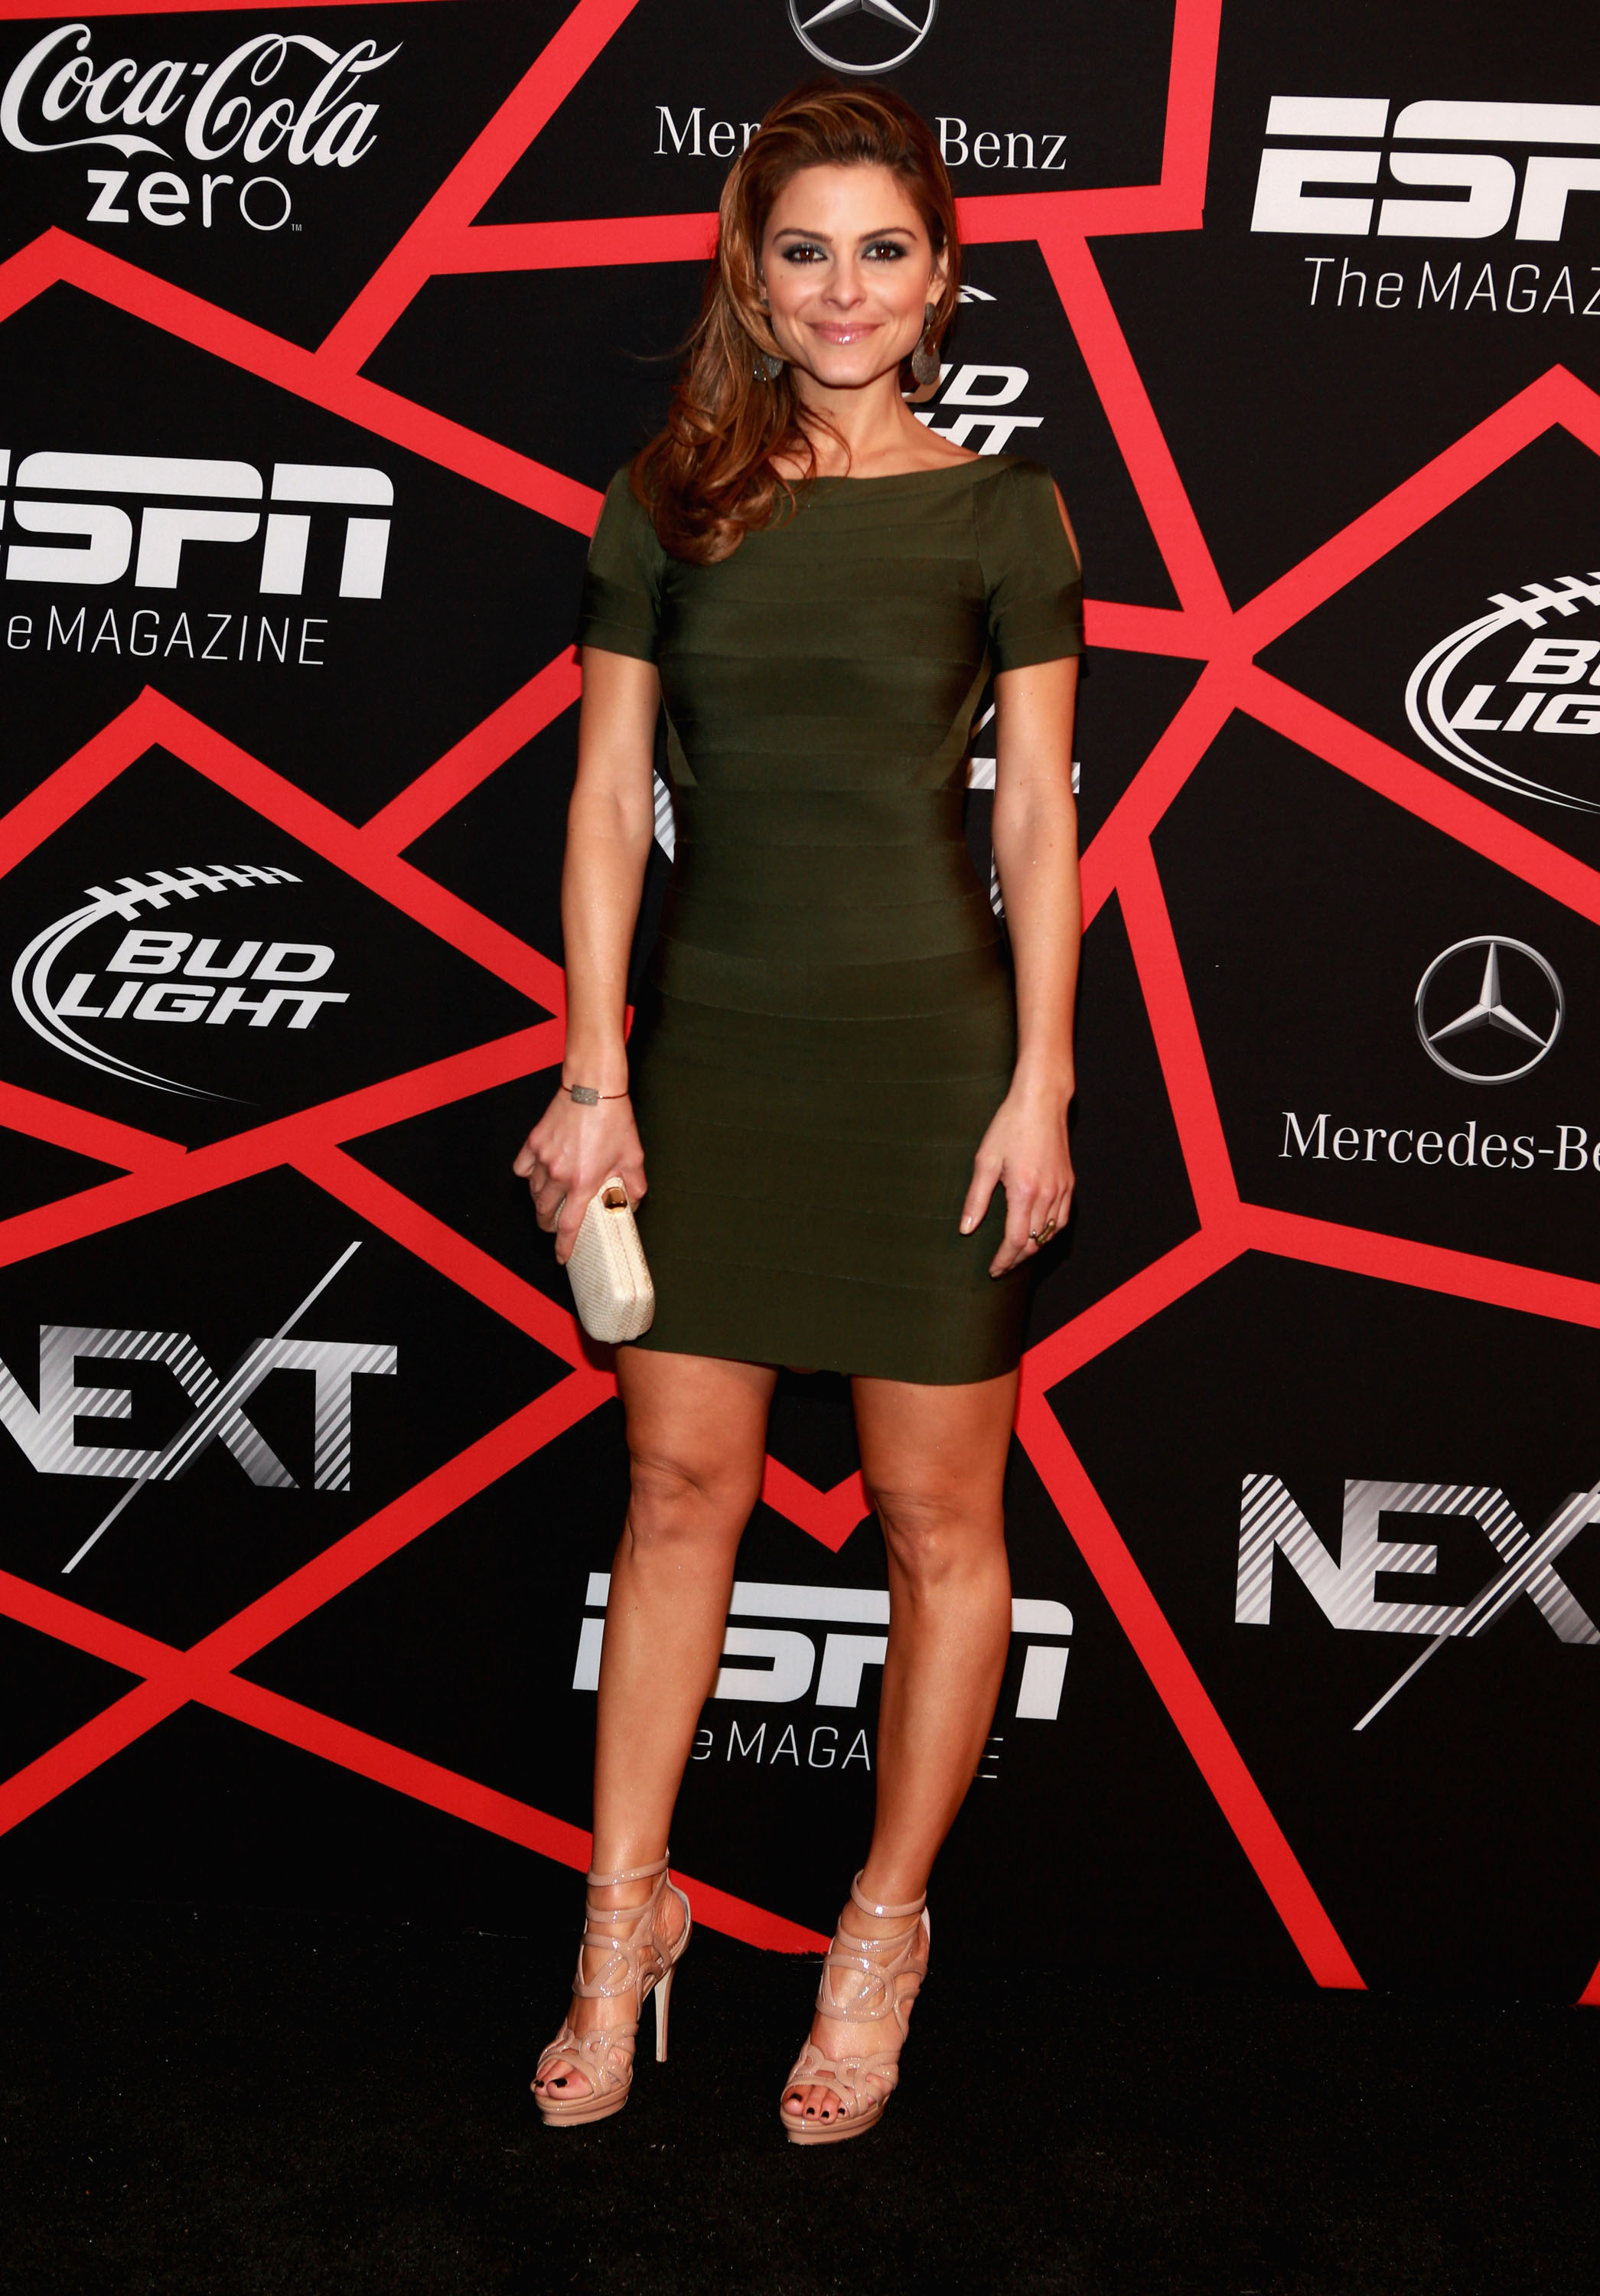 Maria Menounos Wears BCBGMAXAZRIA at Super Bowl XLVII Stars Look Chic in BCBGMAXAZRIA Group Designs at Super Bowl XLVII